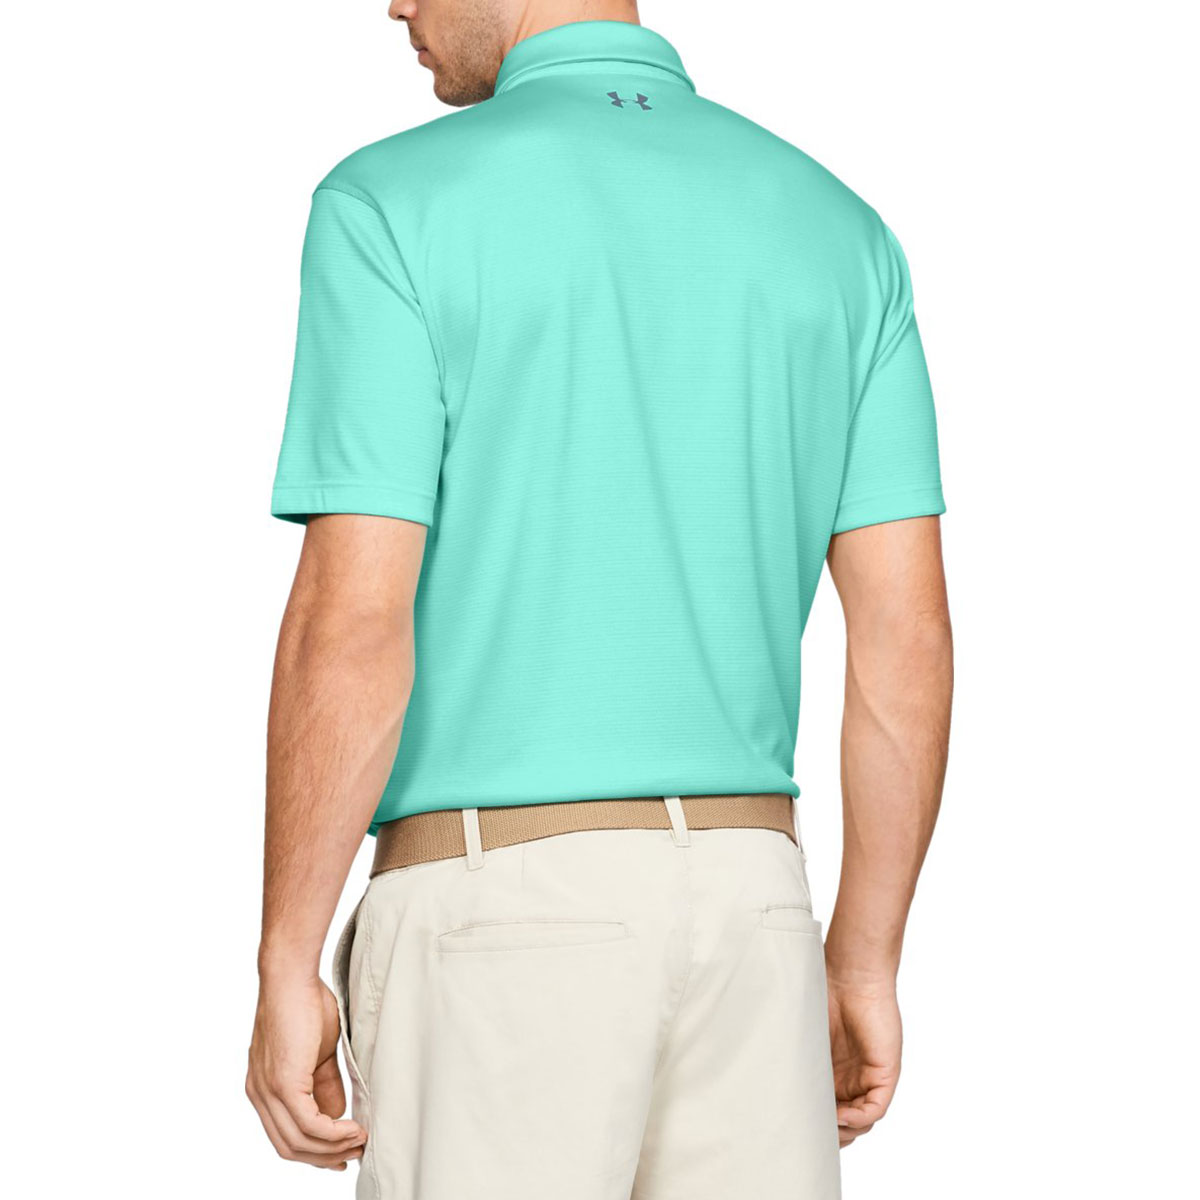 Under-Armour-Mens-Golf-Tech-Wicking-Textured-Soft-Light-Polo-Shirt thumbnail 57